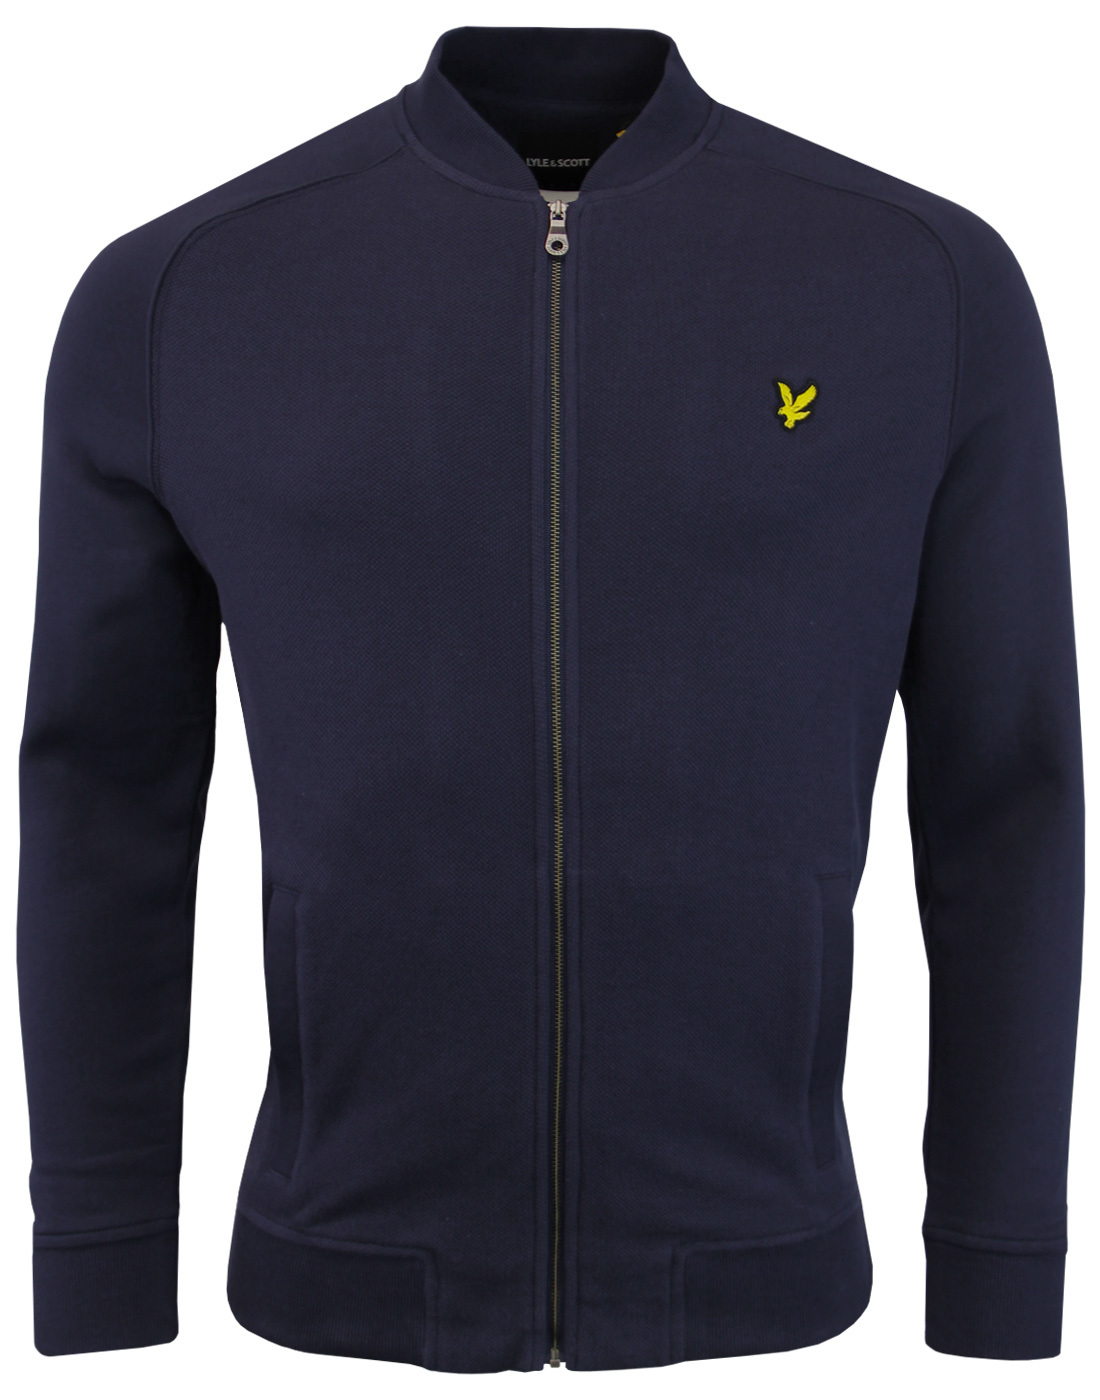 LYLE & SCOTT Retro Mod Honeycomb Bomber Track Top